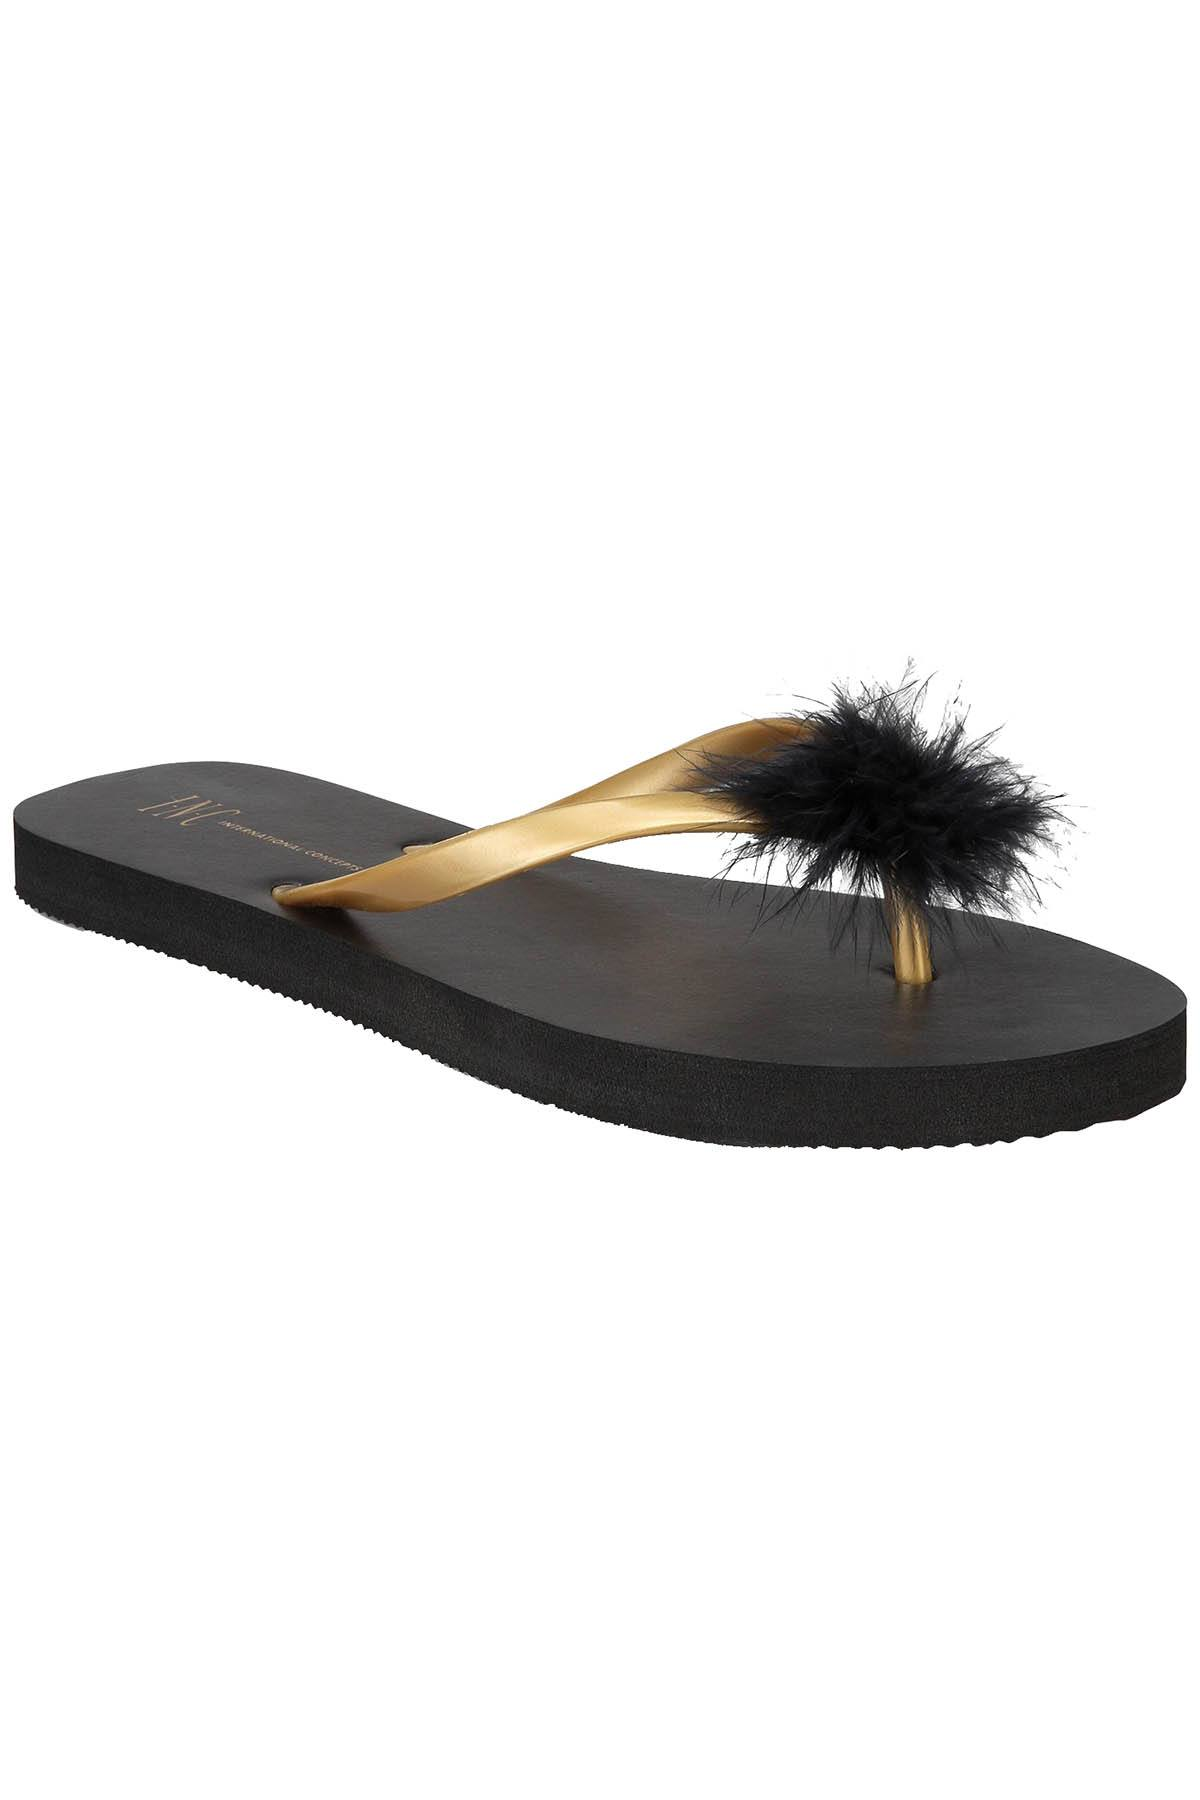 INC International Concepts Feather Puff Flip Flops in Black/Gold